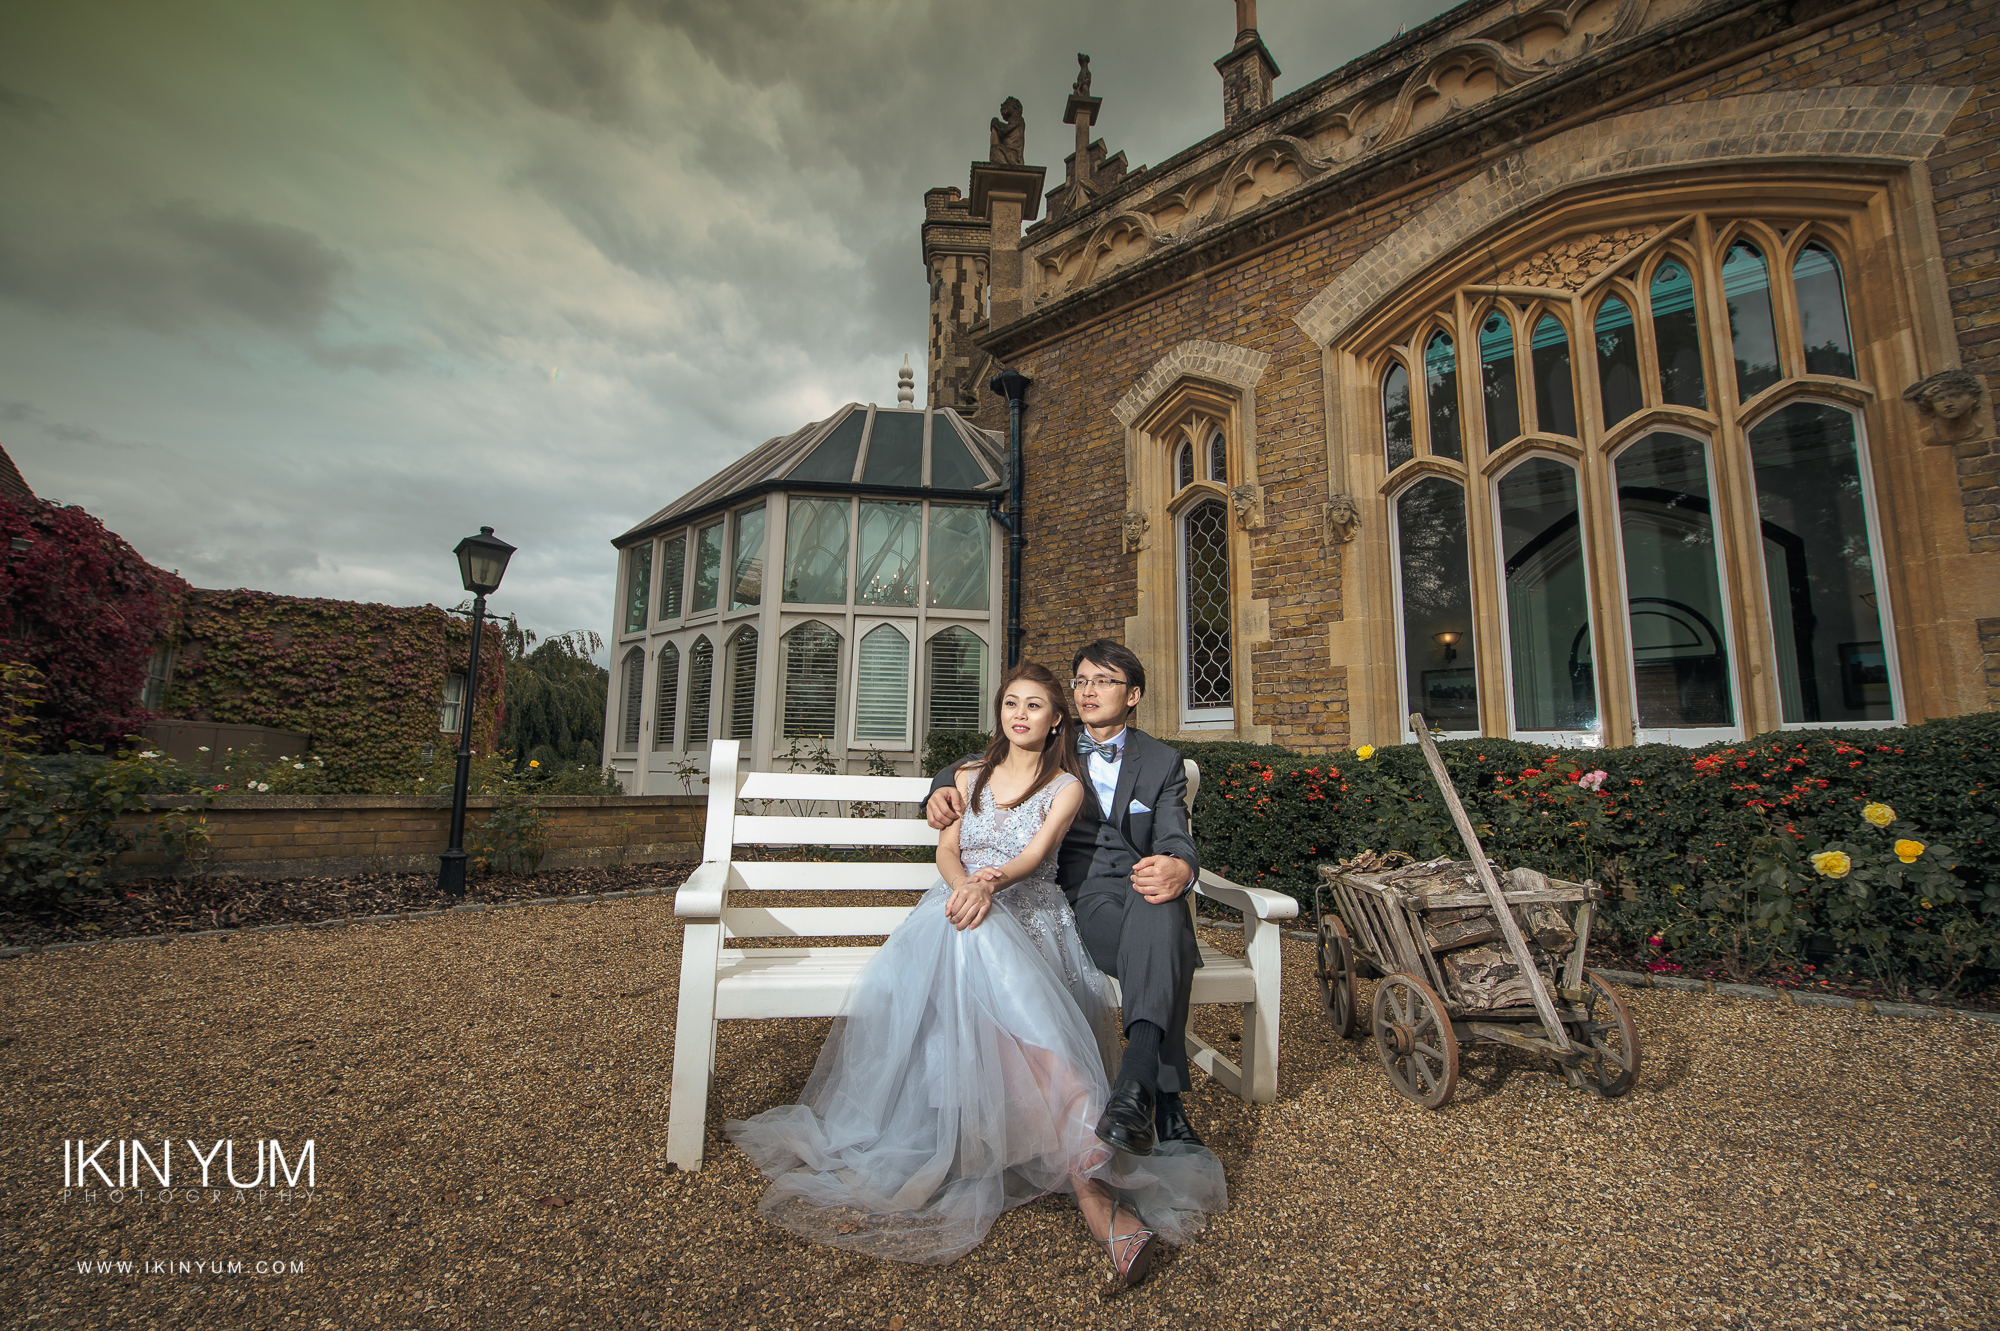 The oakley court Pre-Wedding Shoot - Ikin Yum Photography-049.jpg